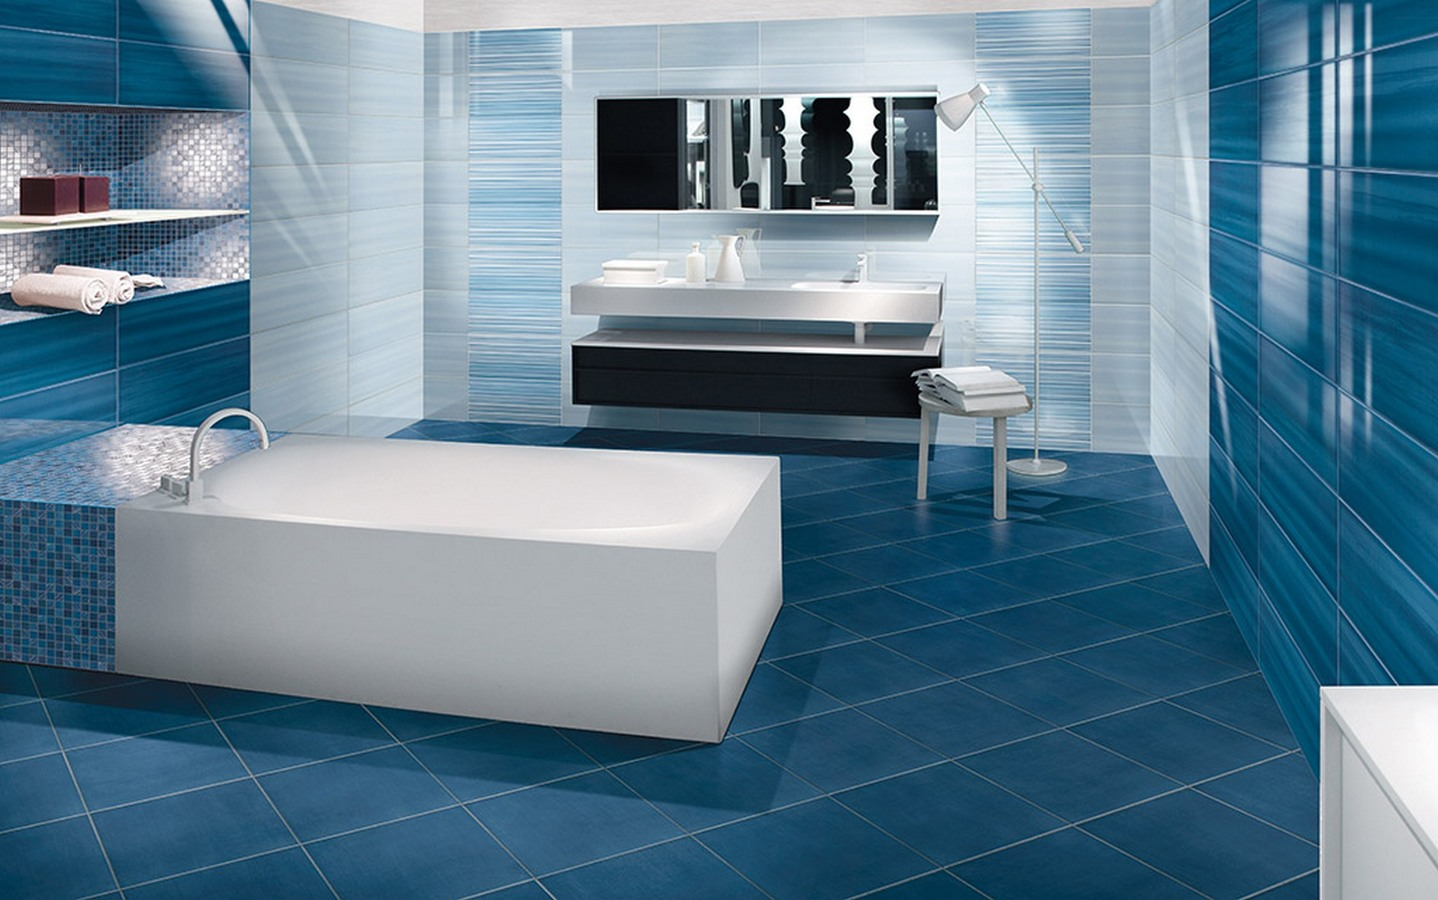 Skyfall ceramic and porcelain tiles by paul tile expert - Piastrelle azzurre ...